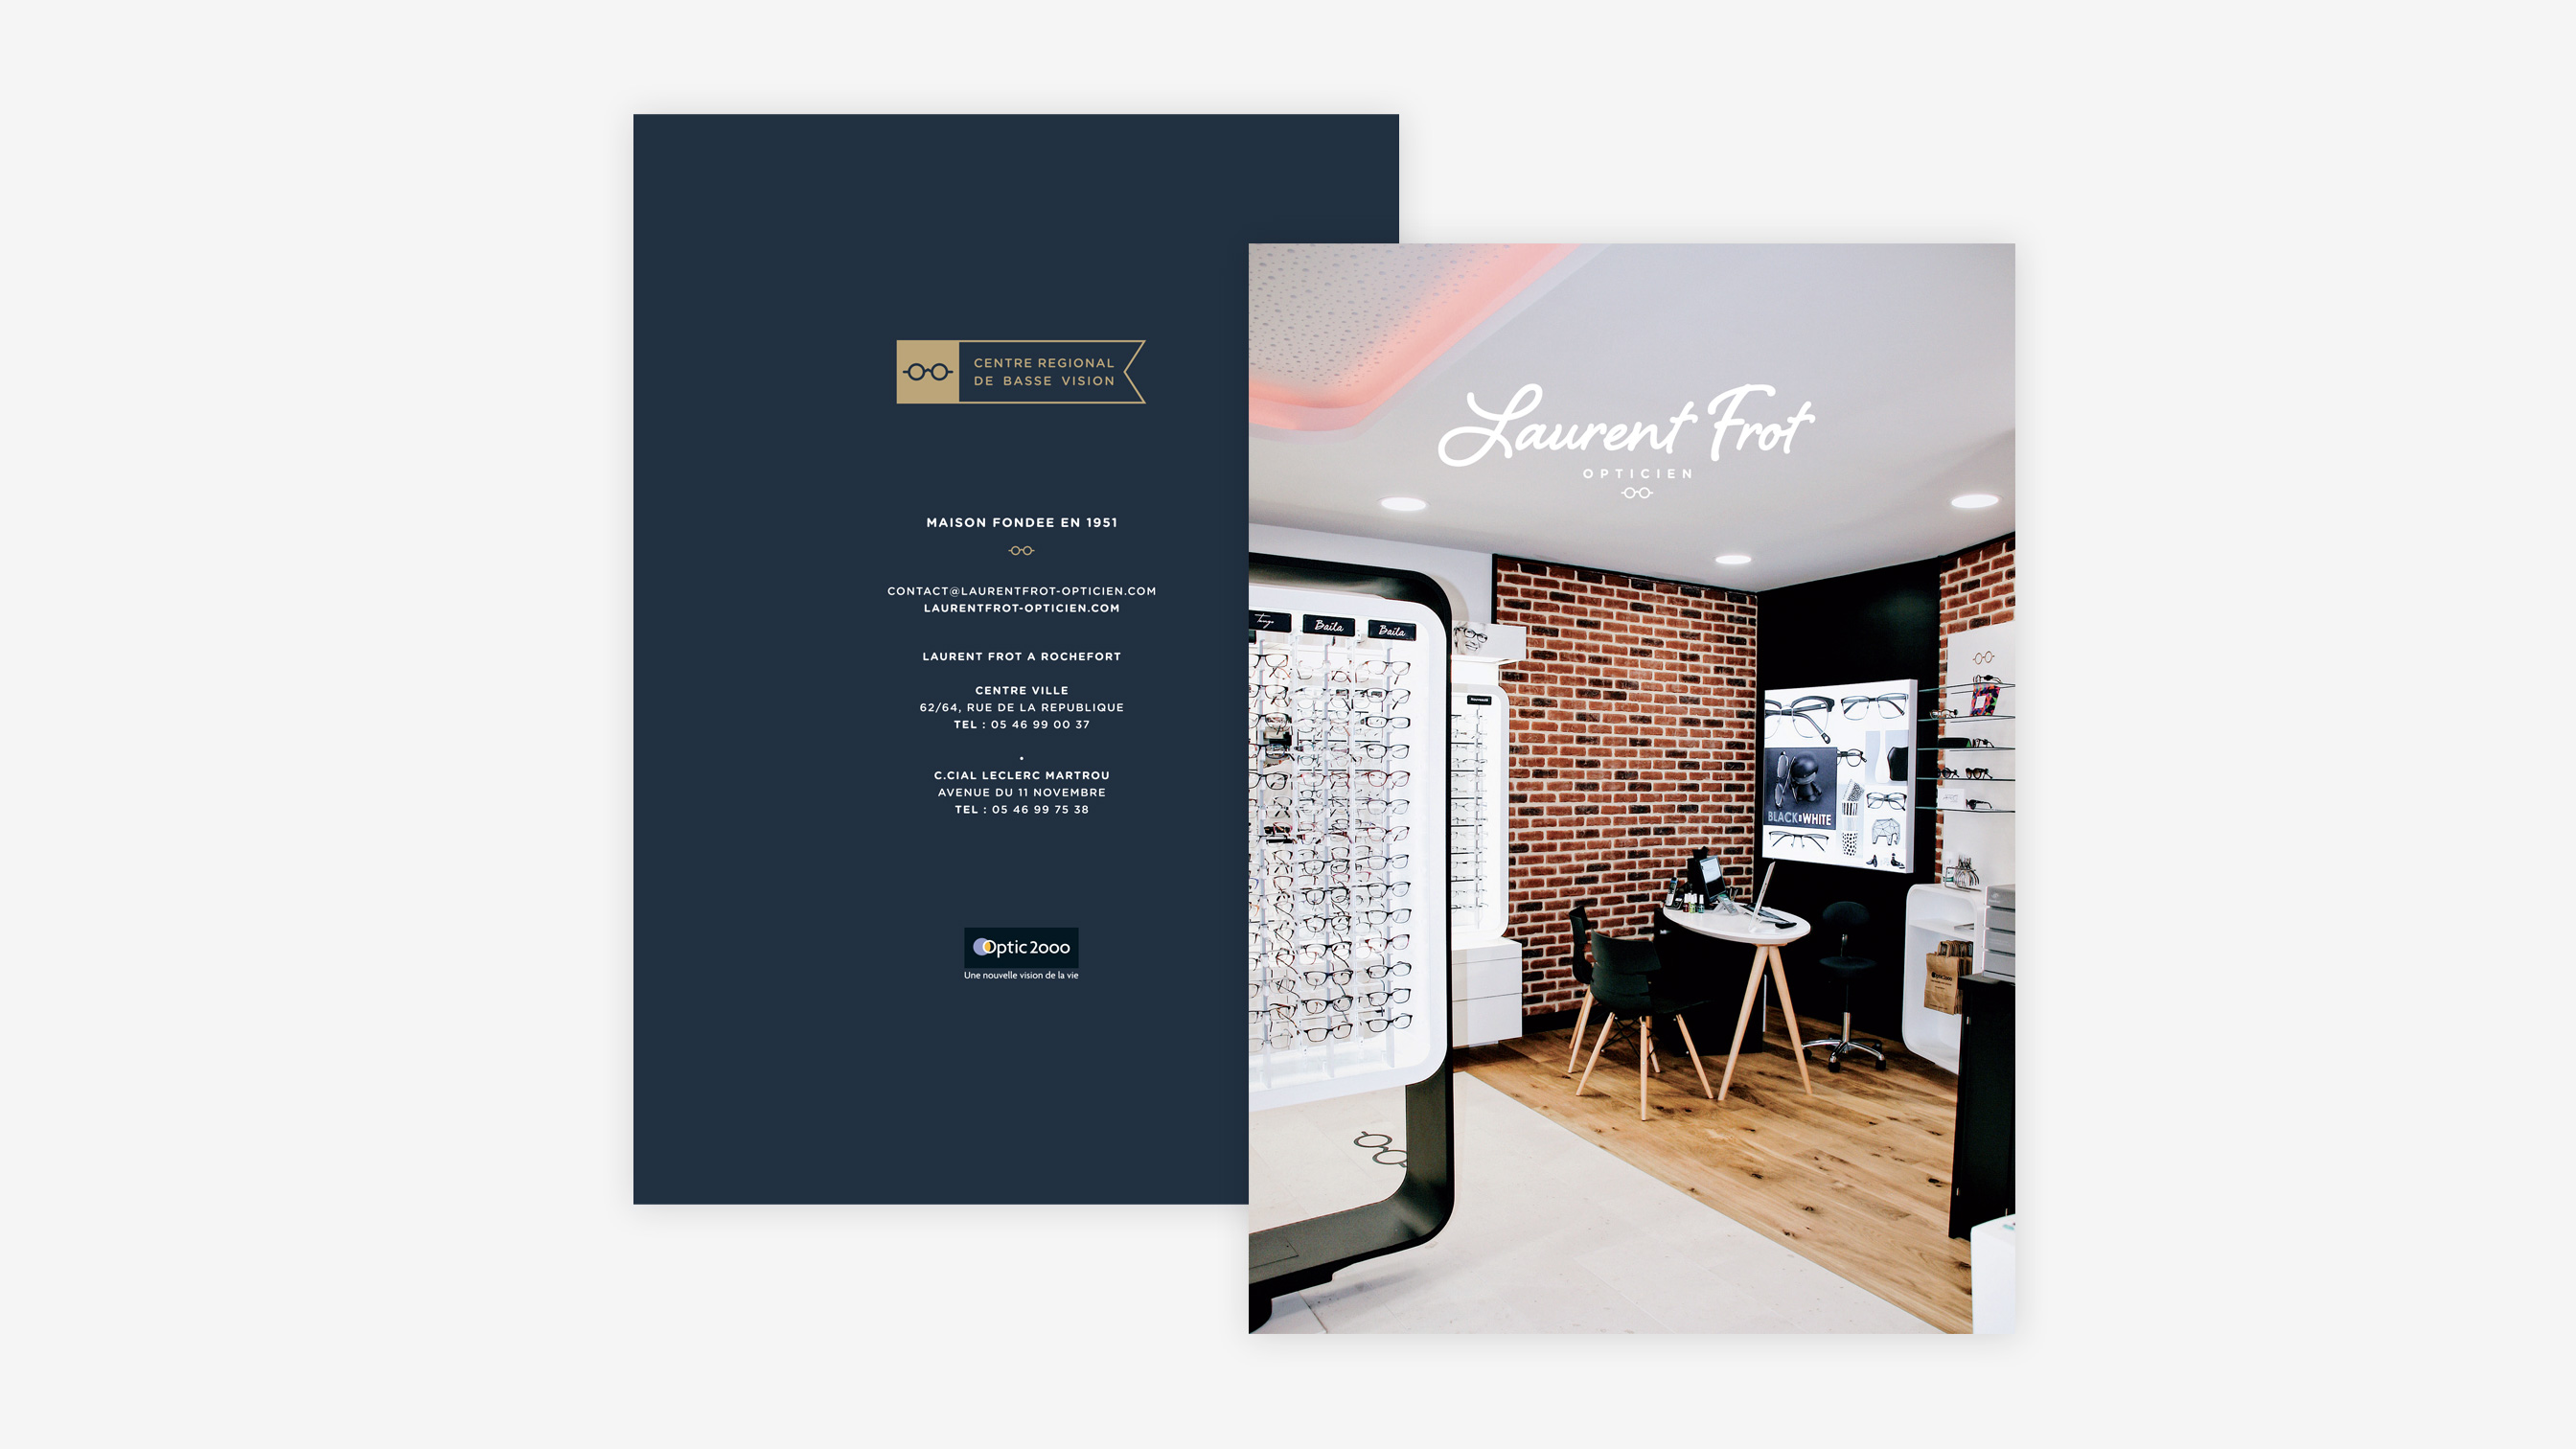 09-laurent-frot-opticien-pikteo-webdesign-graphic-design-freelance-paris-bruxelles-londres